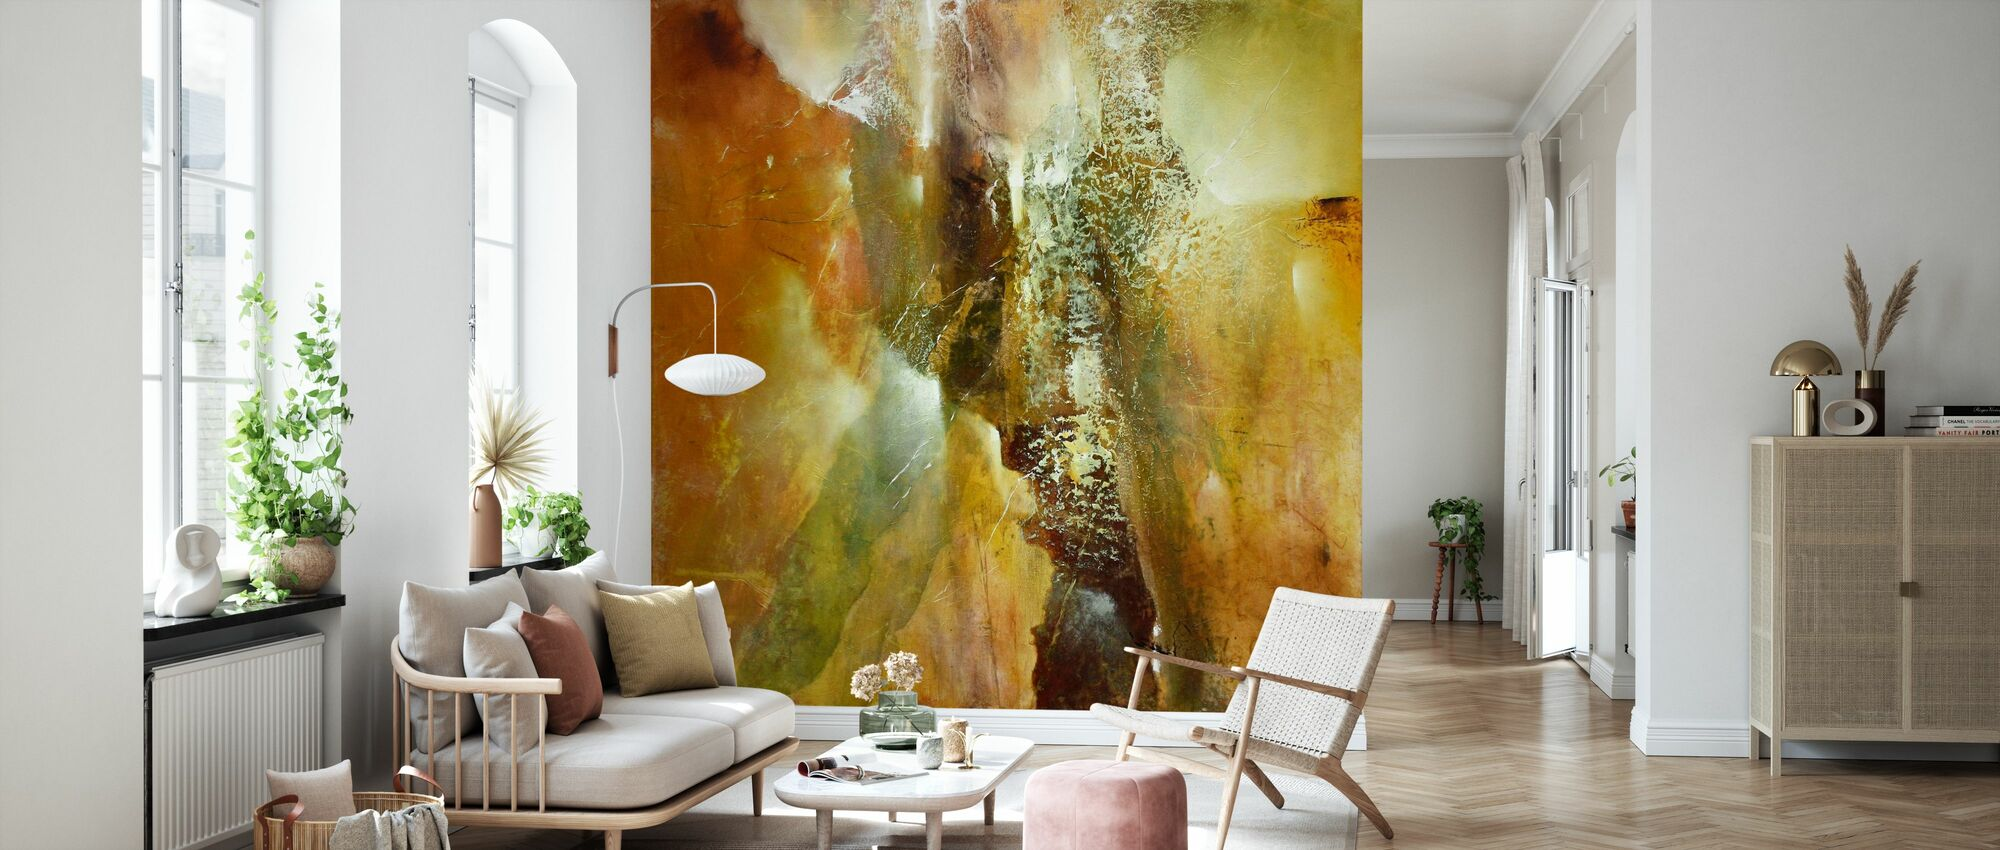 Abstract Composition - Wallpaper - Living Room